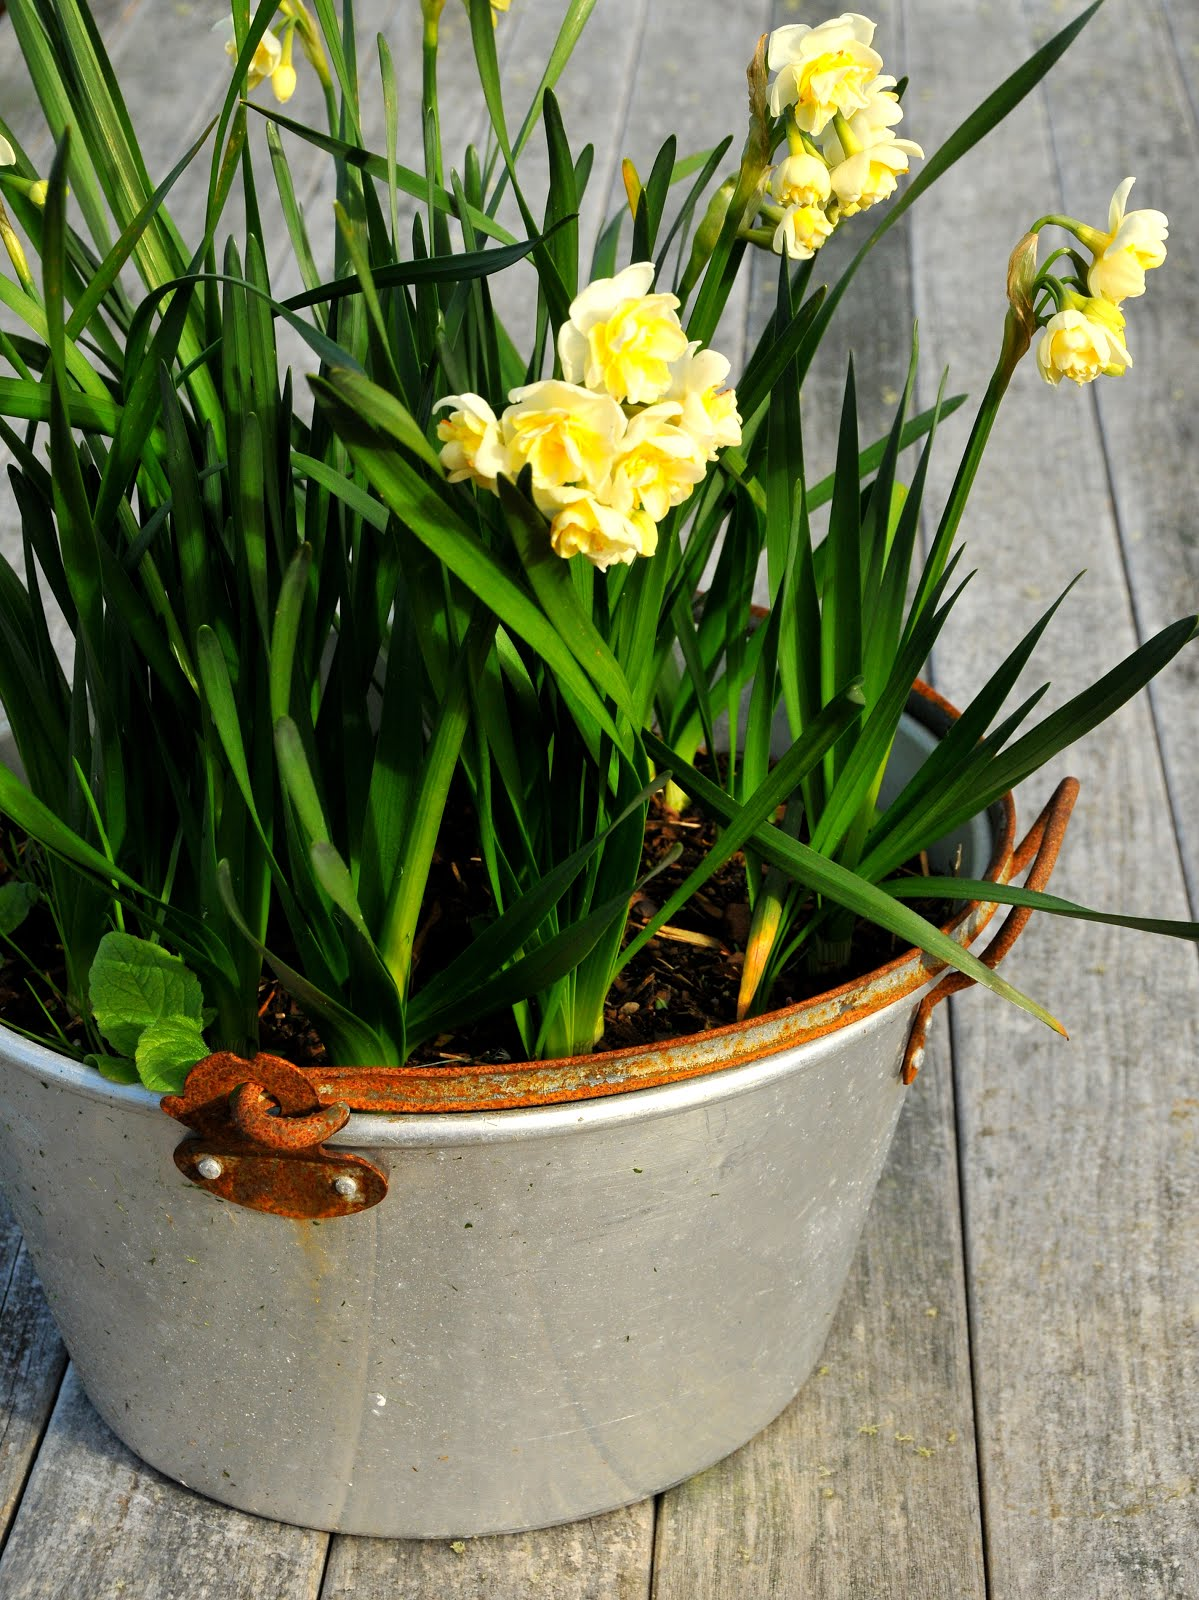 Daffodils in Gramma's old jam making pot